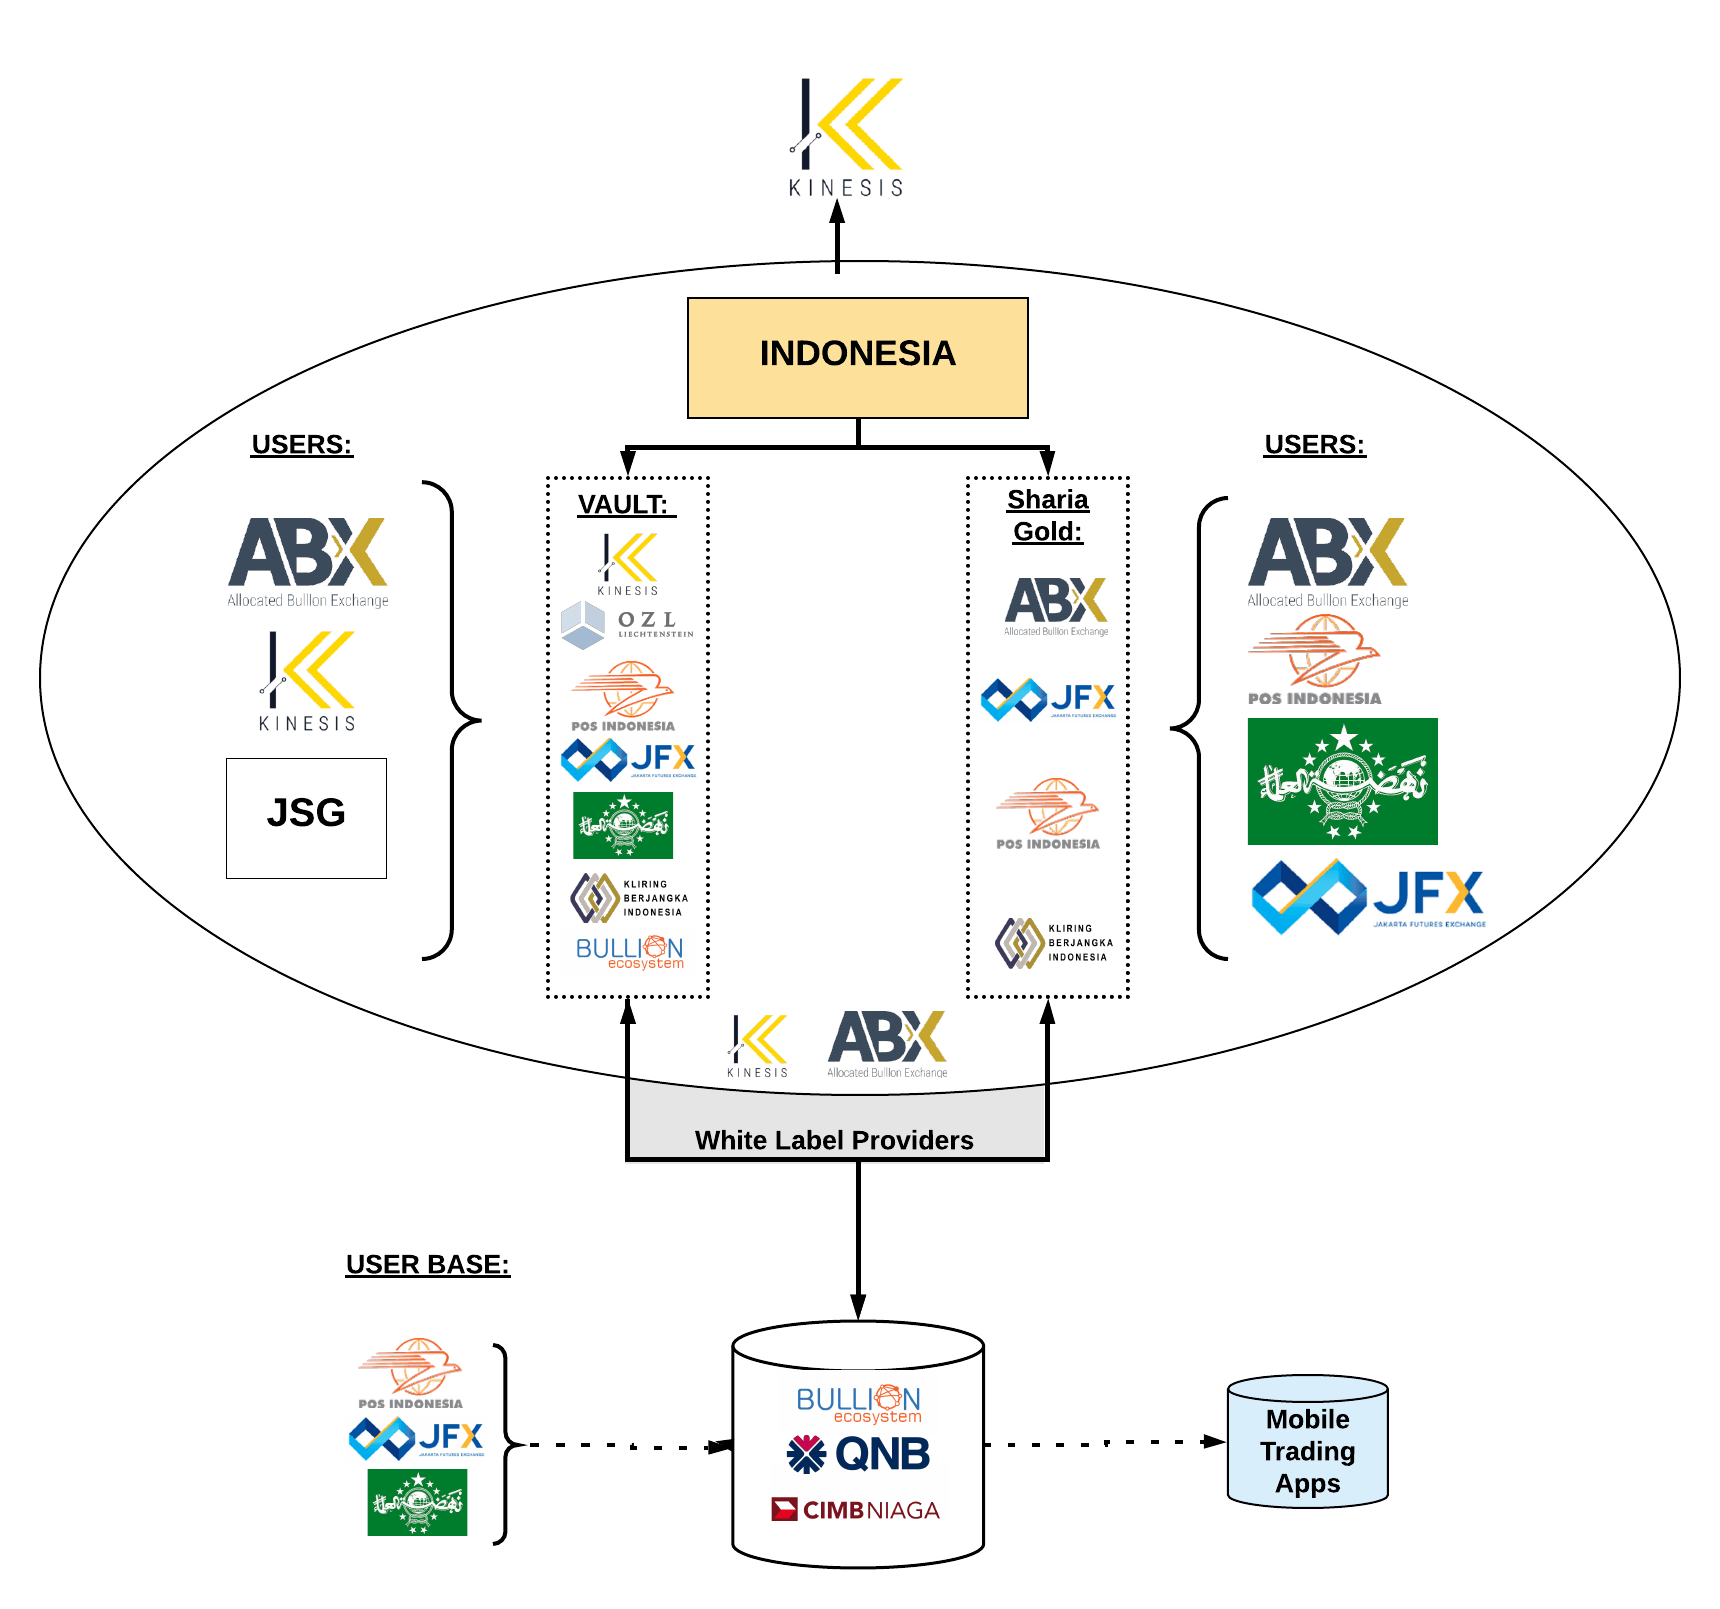 kinesis partnership whitelabel chart for shariah compliant exchange in indonesia with ABX, JFX, POSGO, OZL